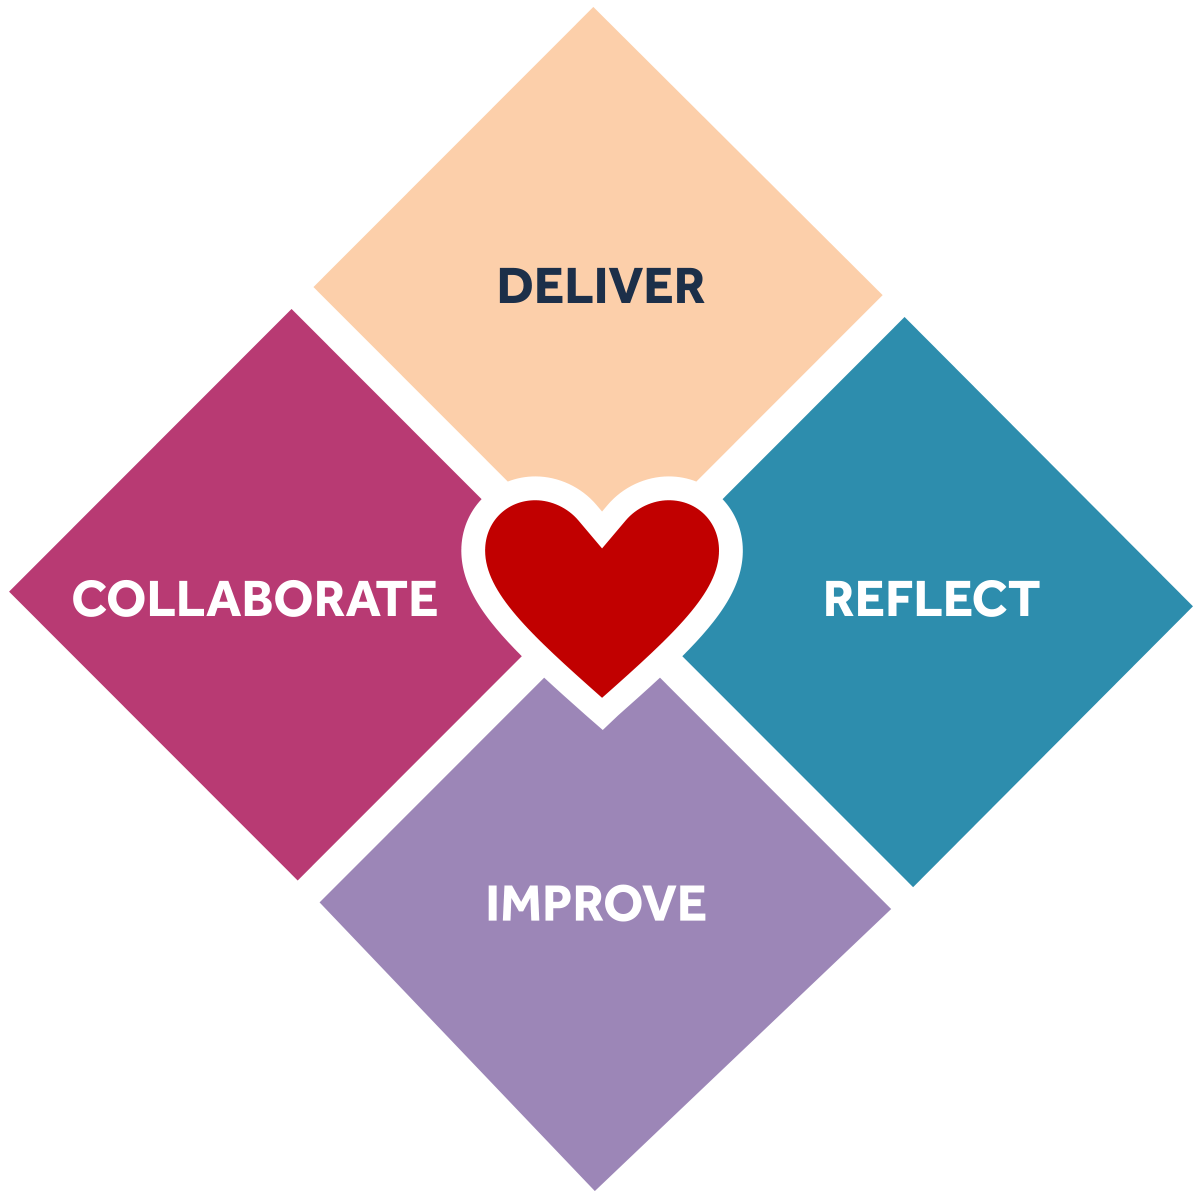 Heart_of_Agile photo